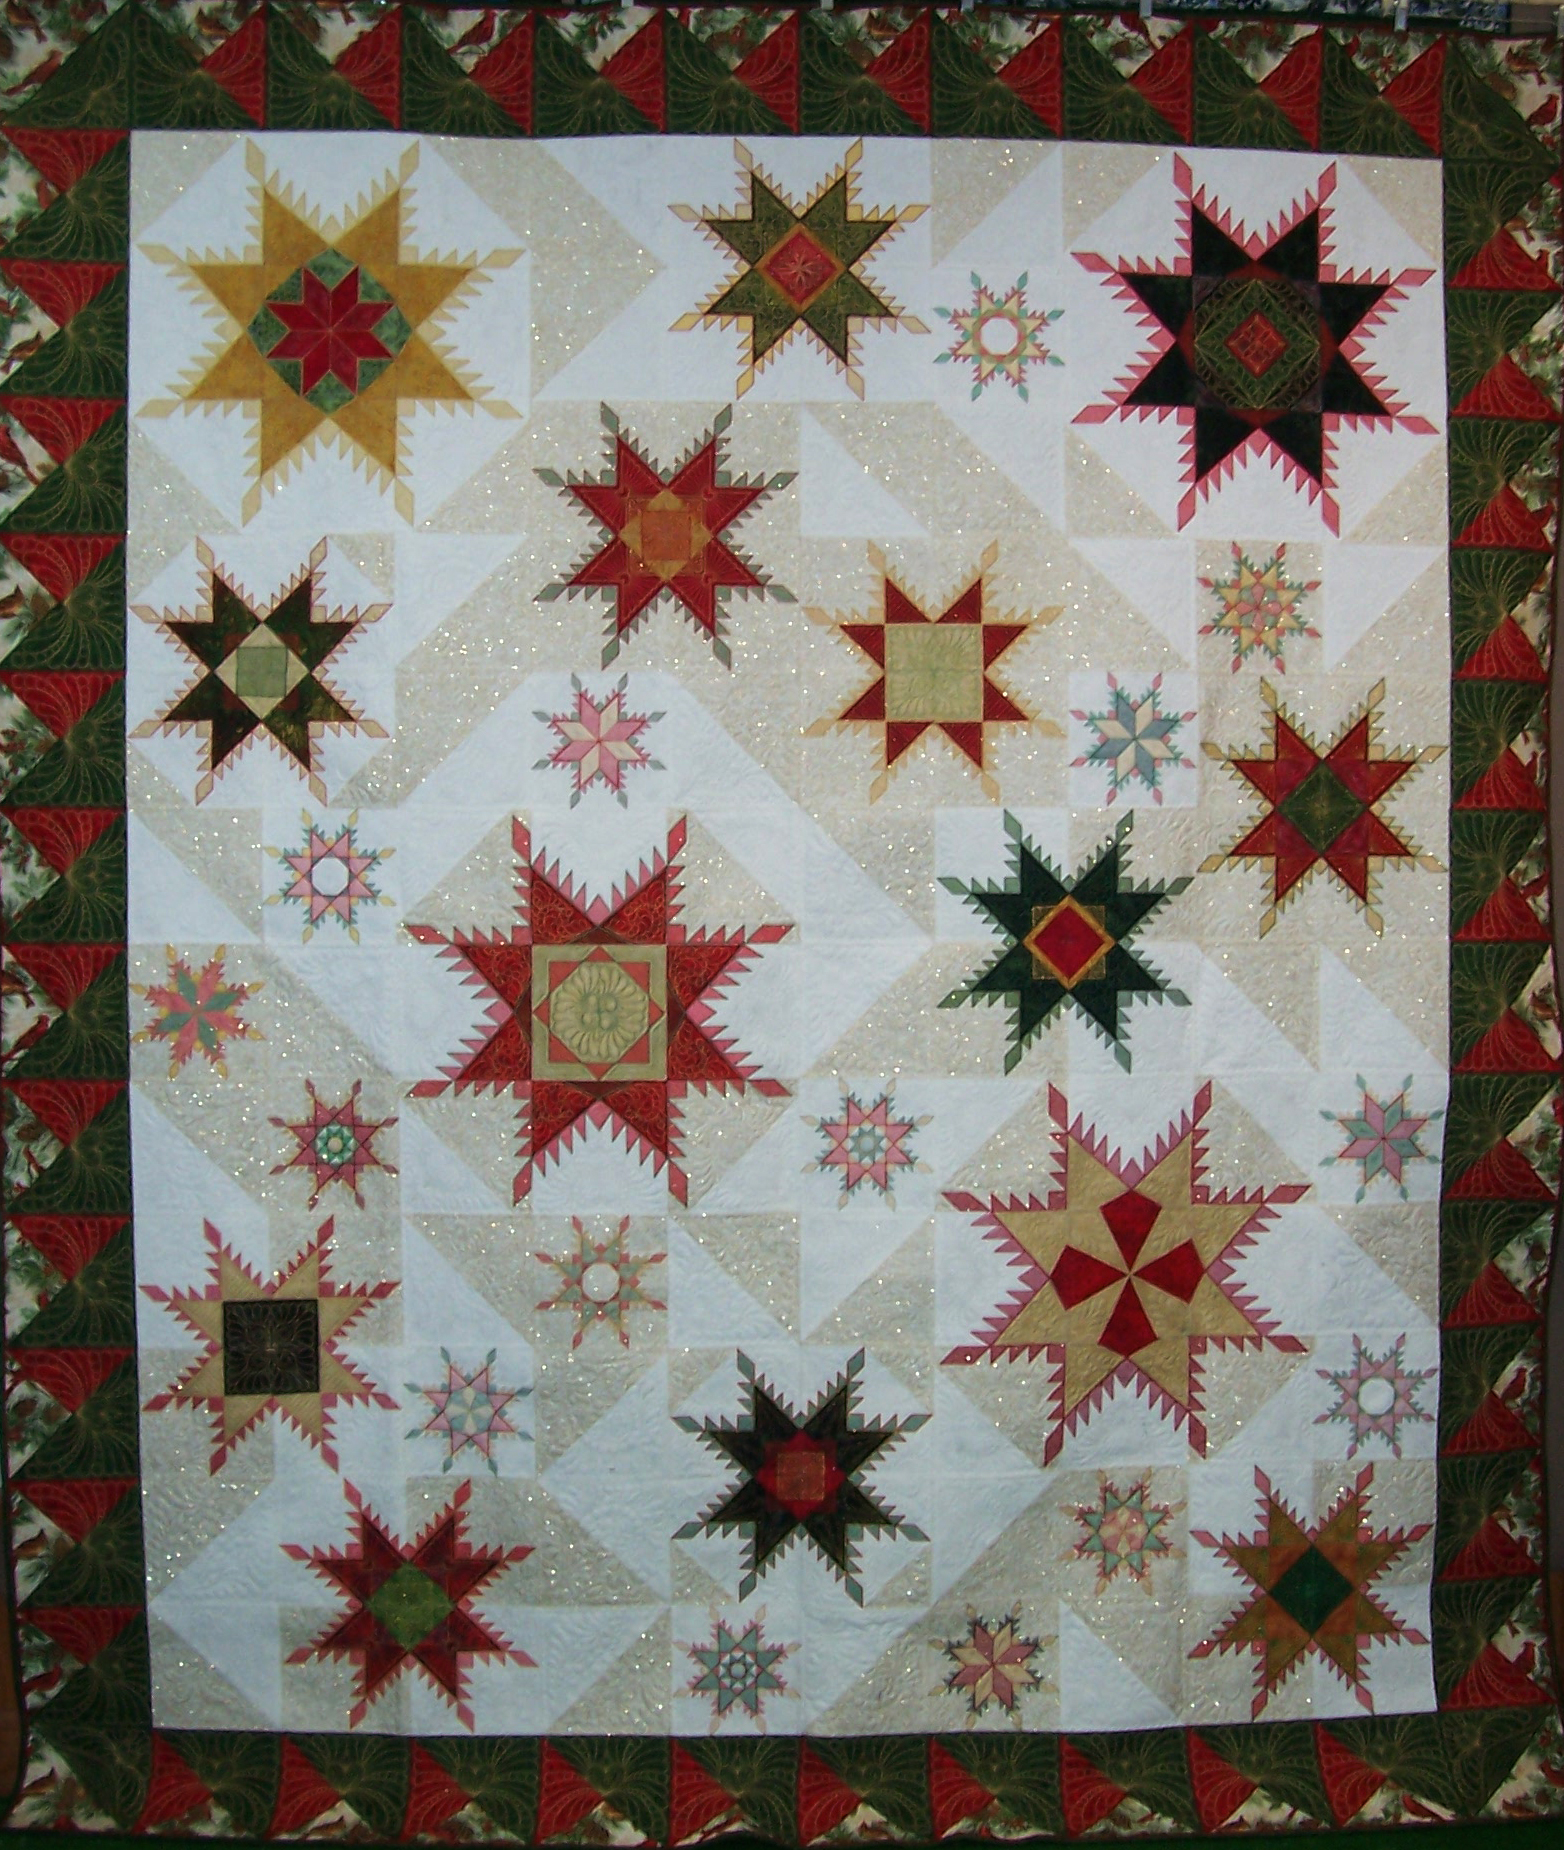 Feathered Star Cyber Quilt Show Hoopsisters